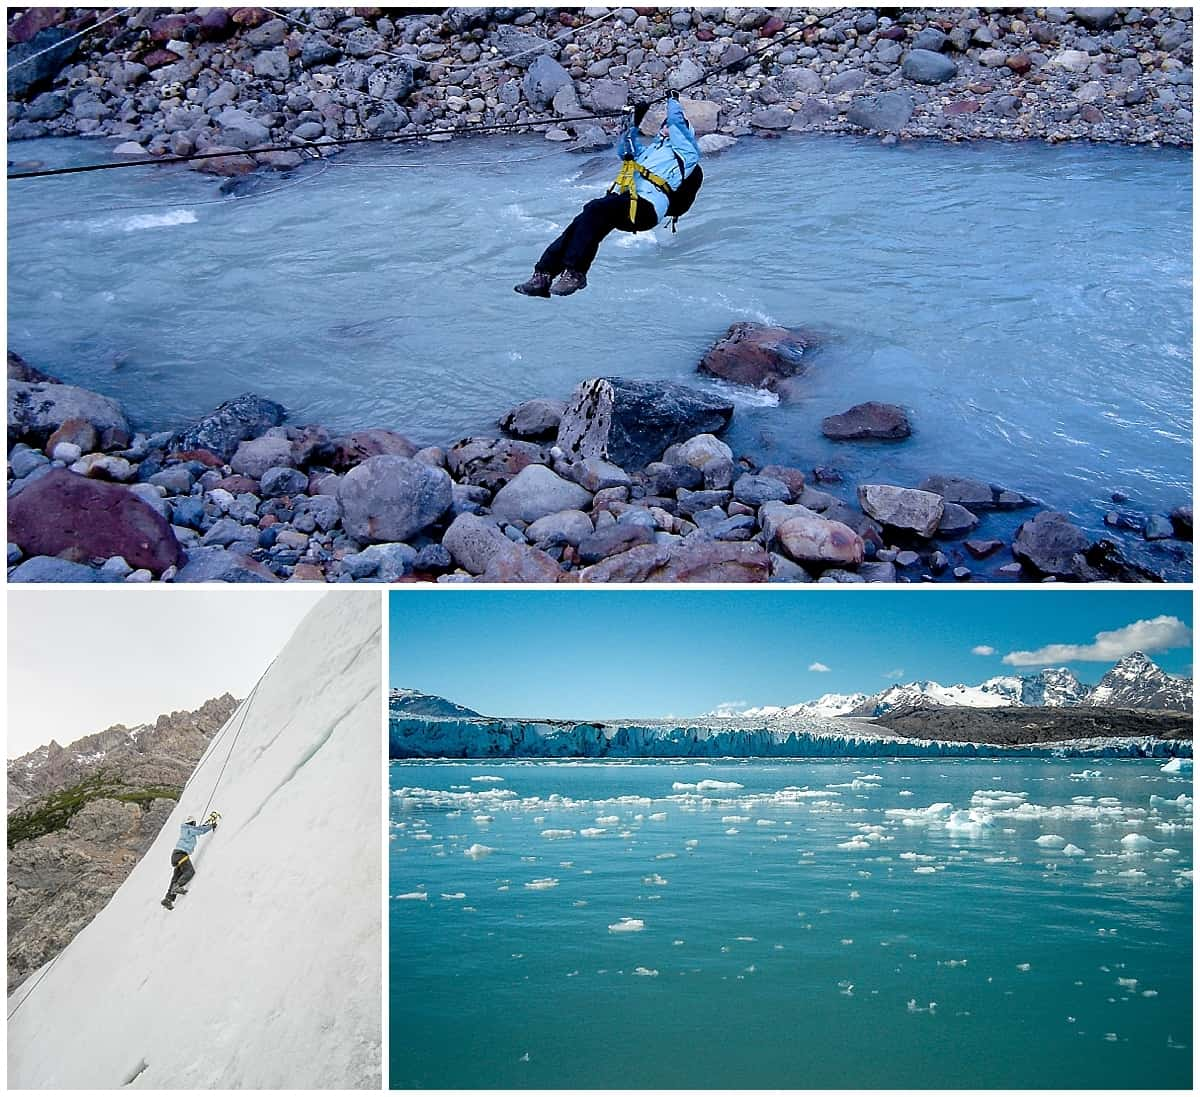 Ice climbing and trekking and crossing glacial streams in Patagonia